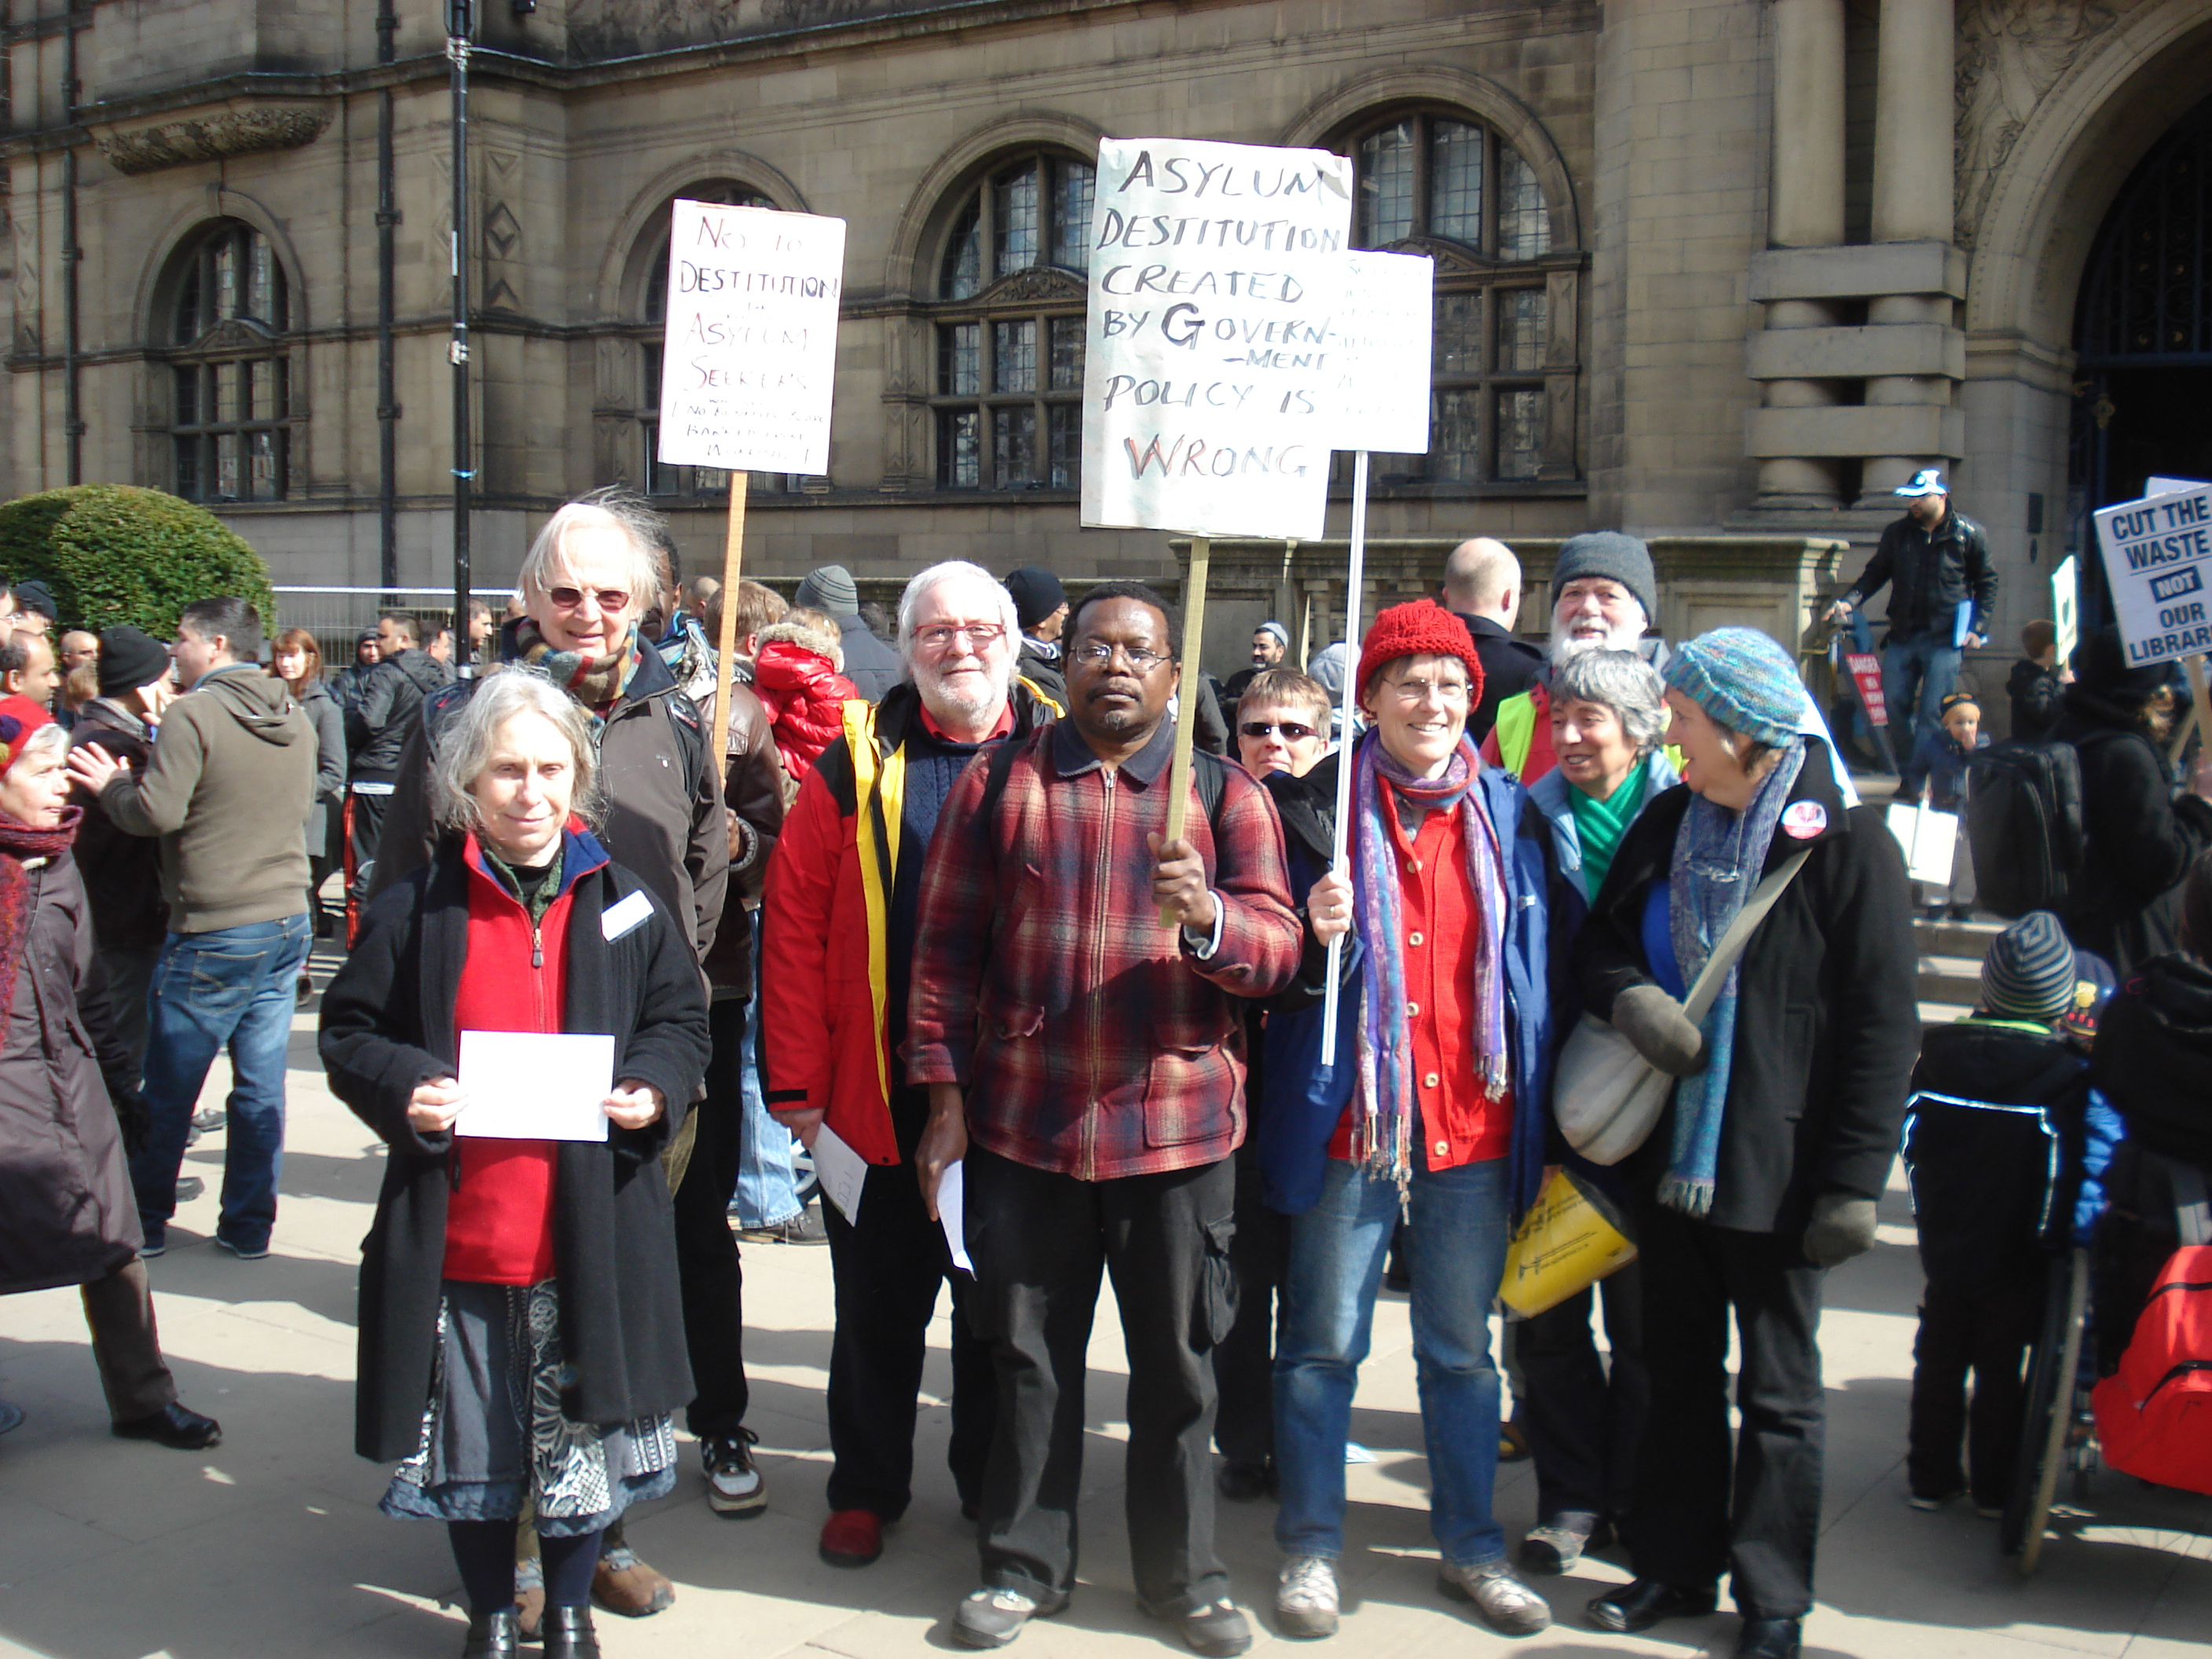 Sheffield Council Takes Stand Against Asylum Destitution